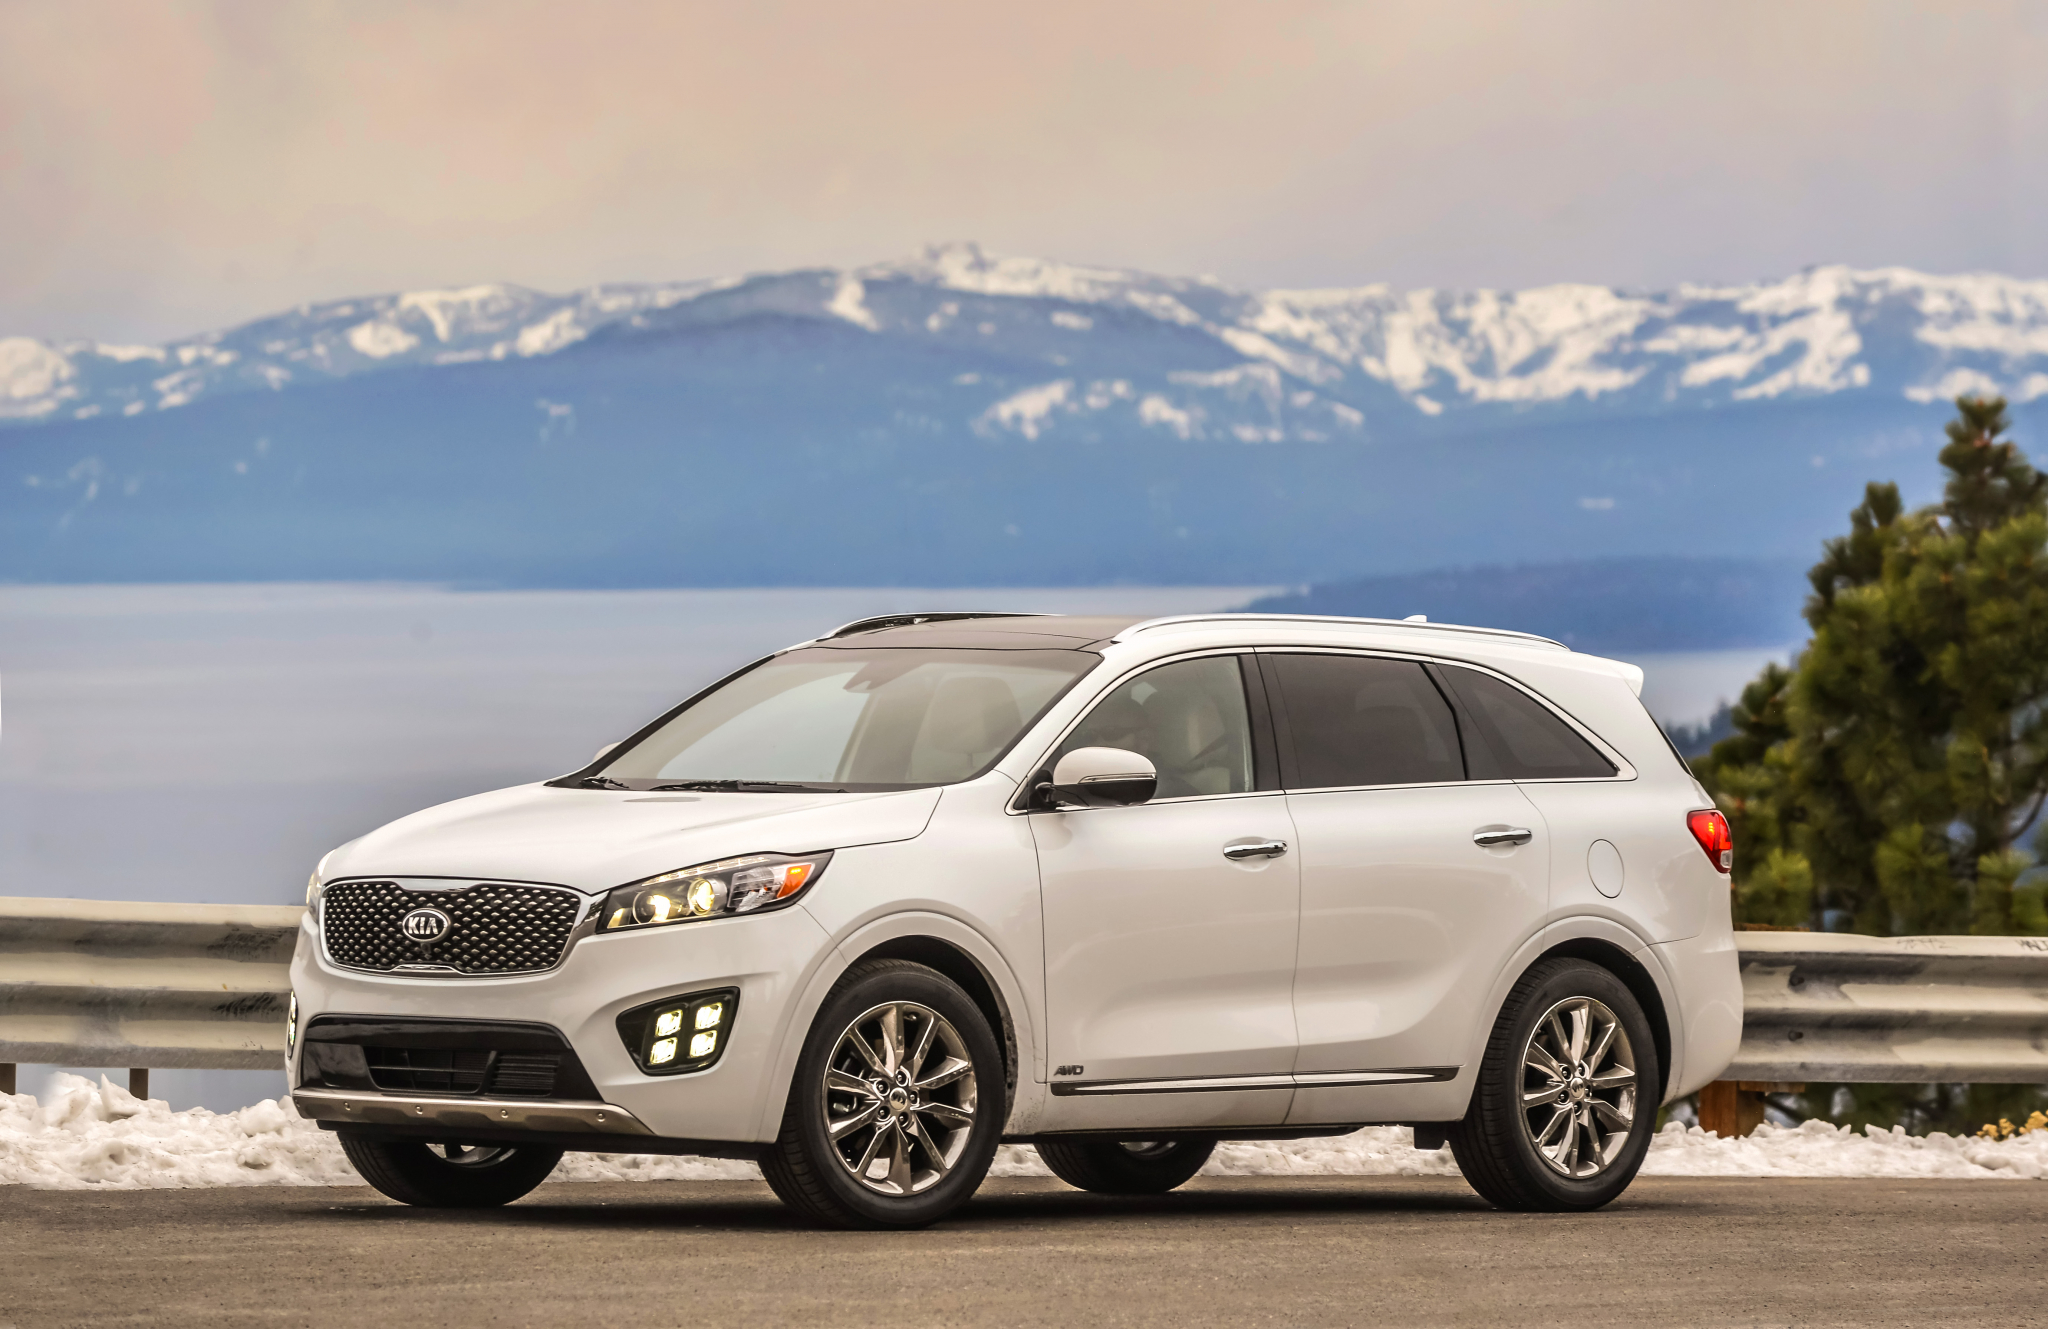 kia sorento 2016 hd wallpapers free download. Black Bedroom Furniture Sets. Home Design Ideas